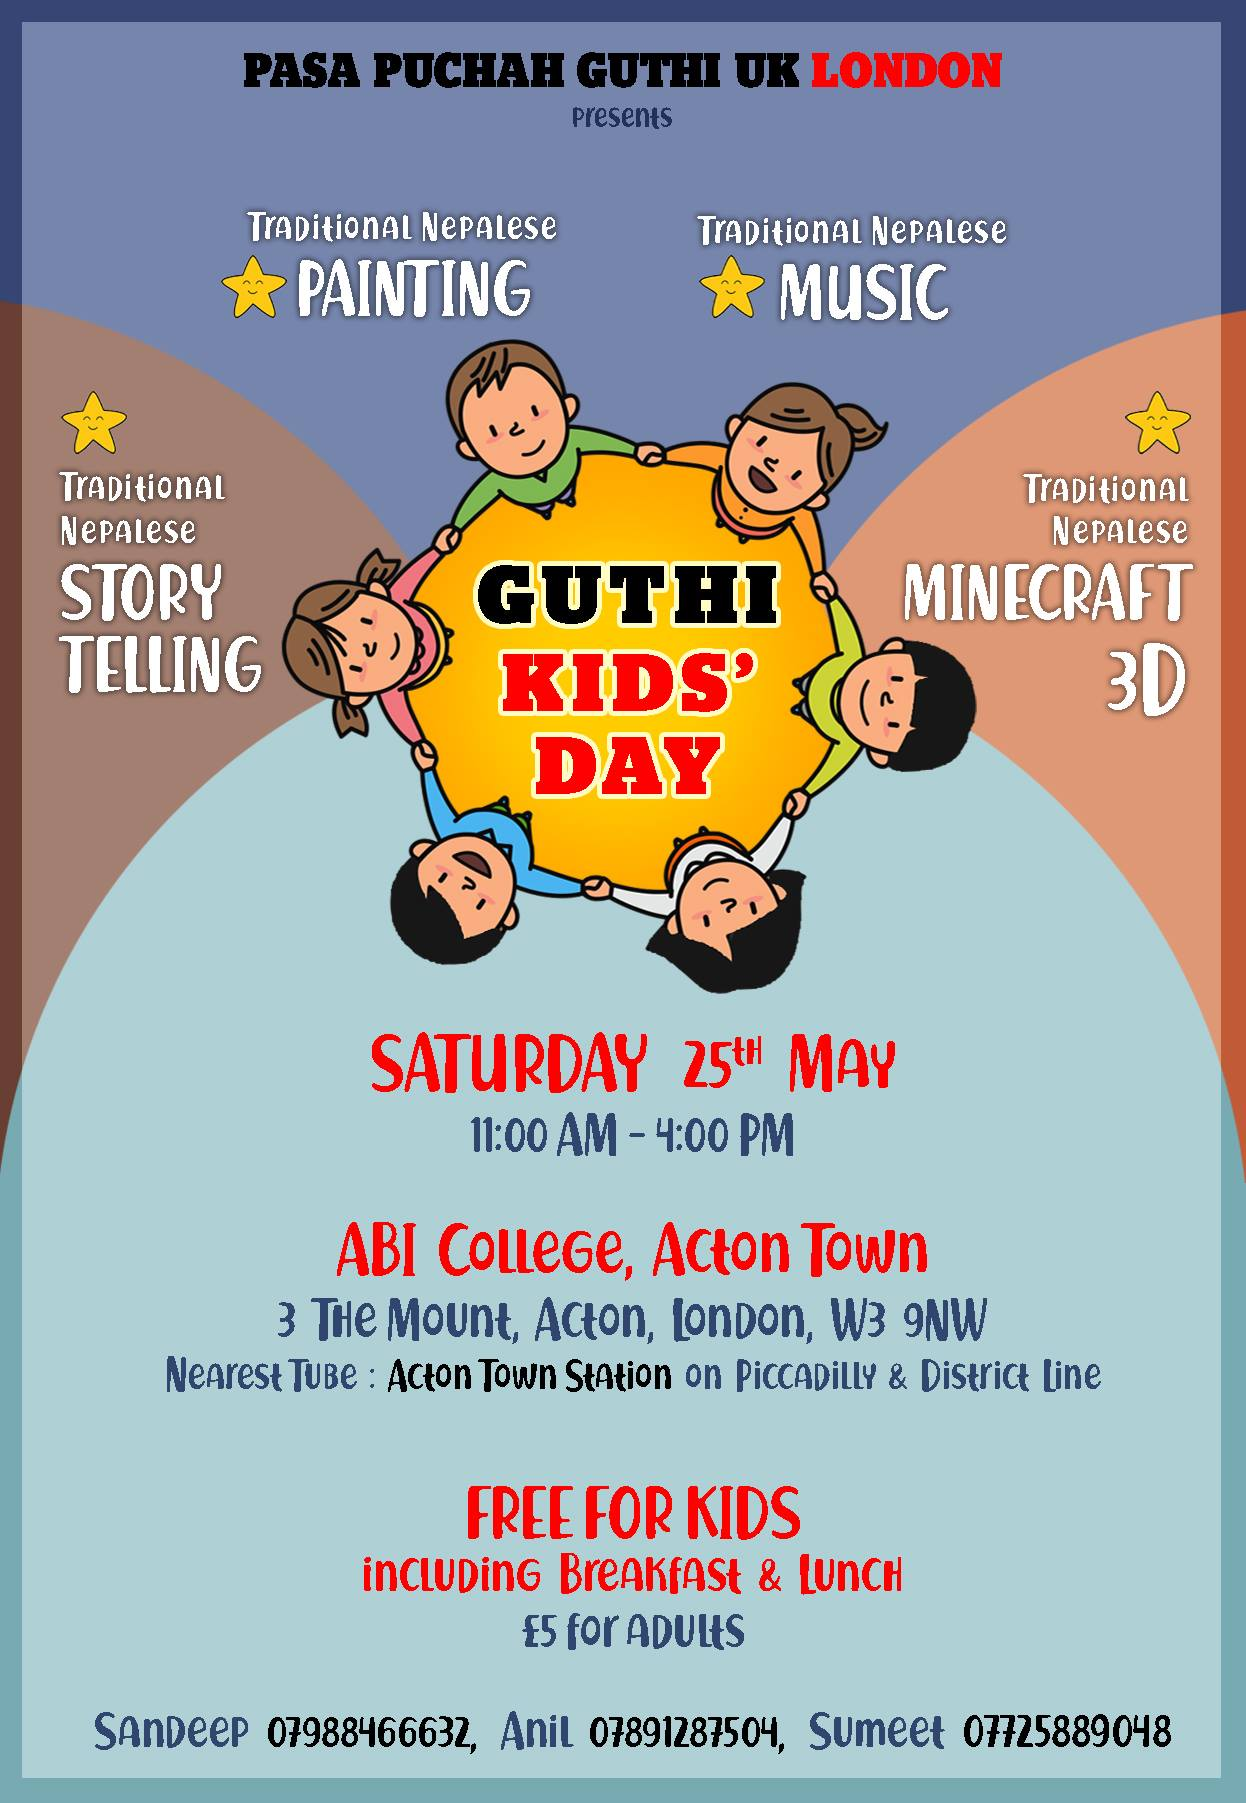 Guthi Kids' Day